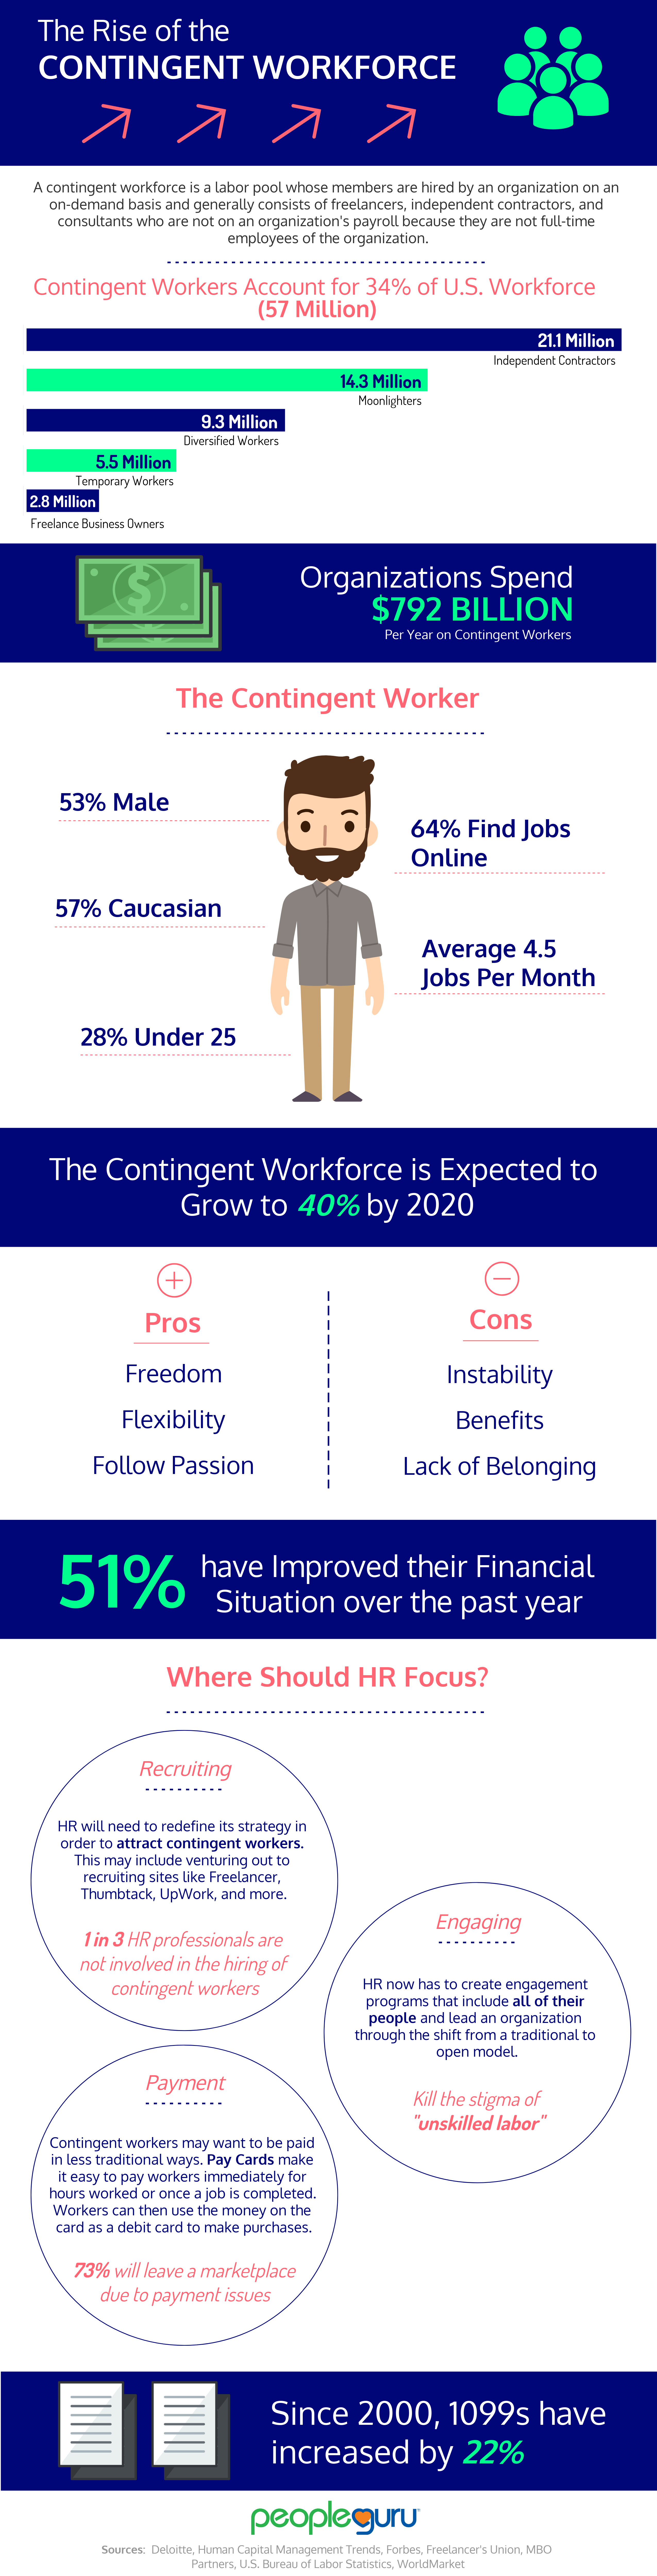 Contingent_Workforce_Pic